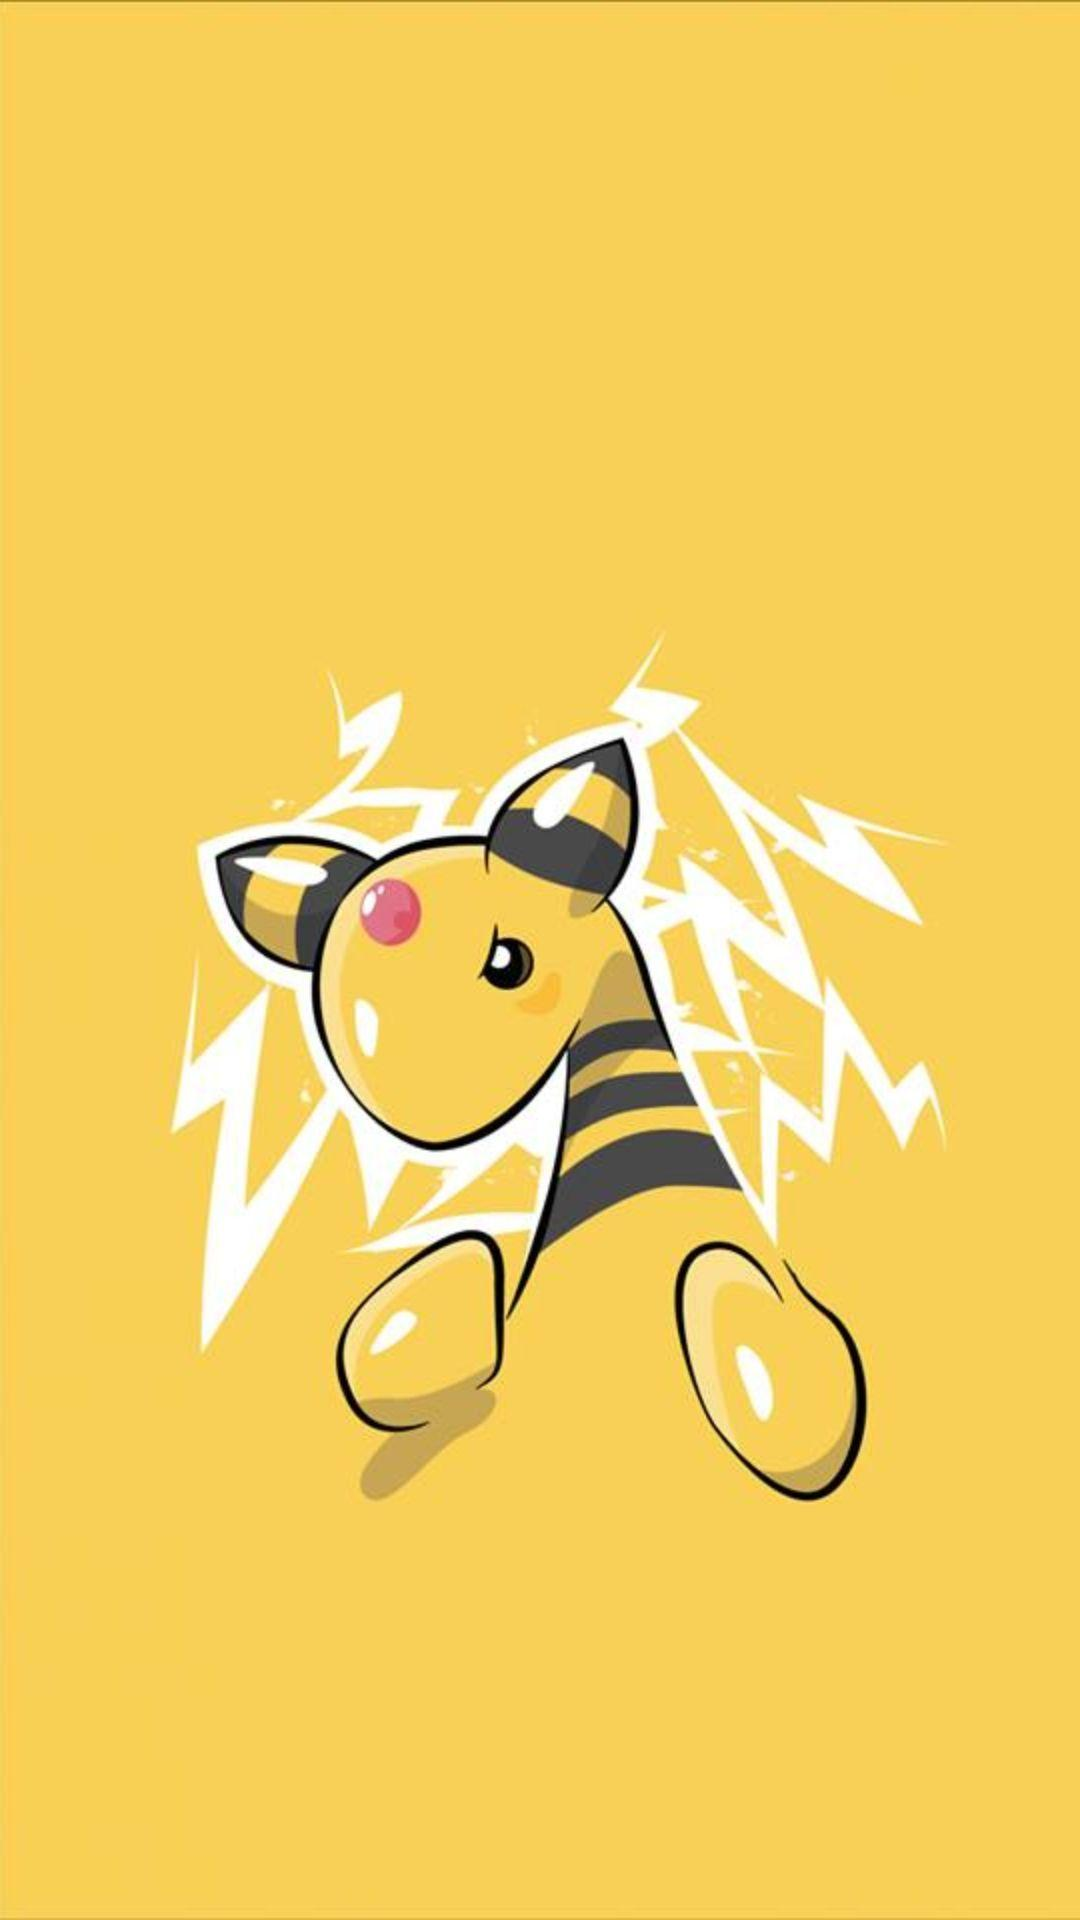 Ampharos - Tap to see more Pokemon Go wallpaper! | @mobile9 ...